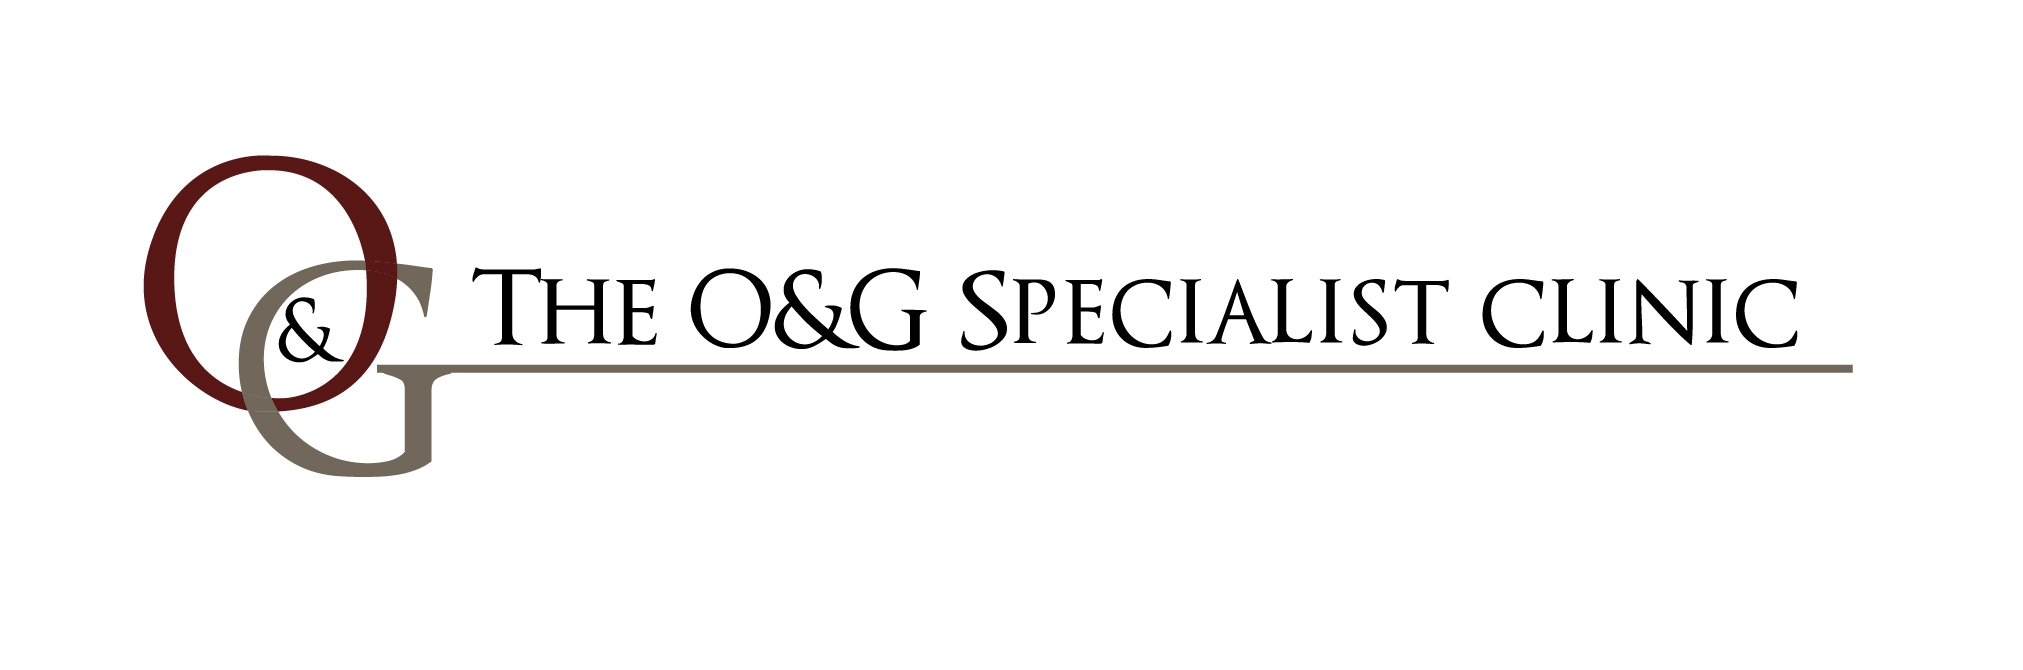 The O&G Specialist Clinic